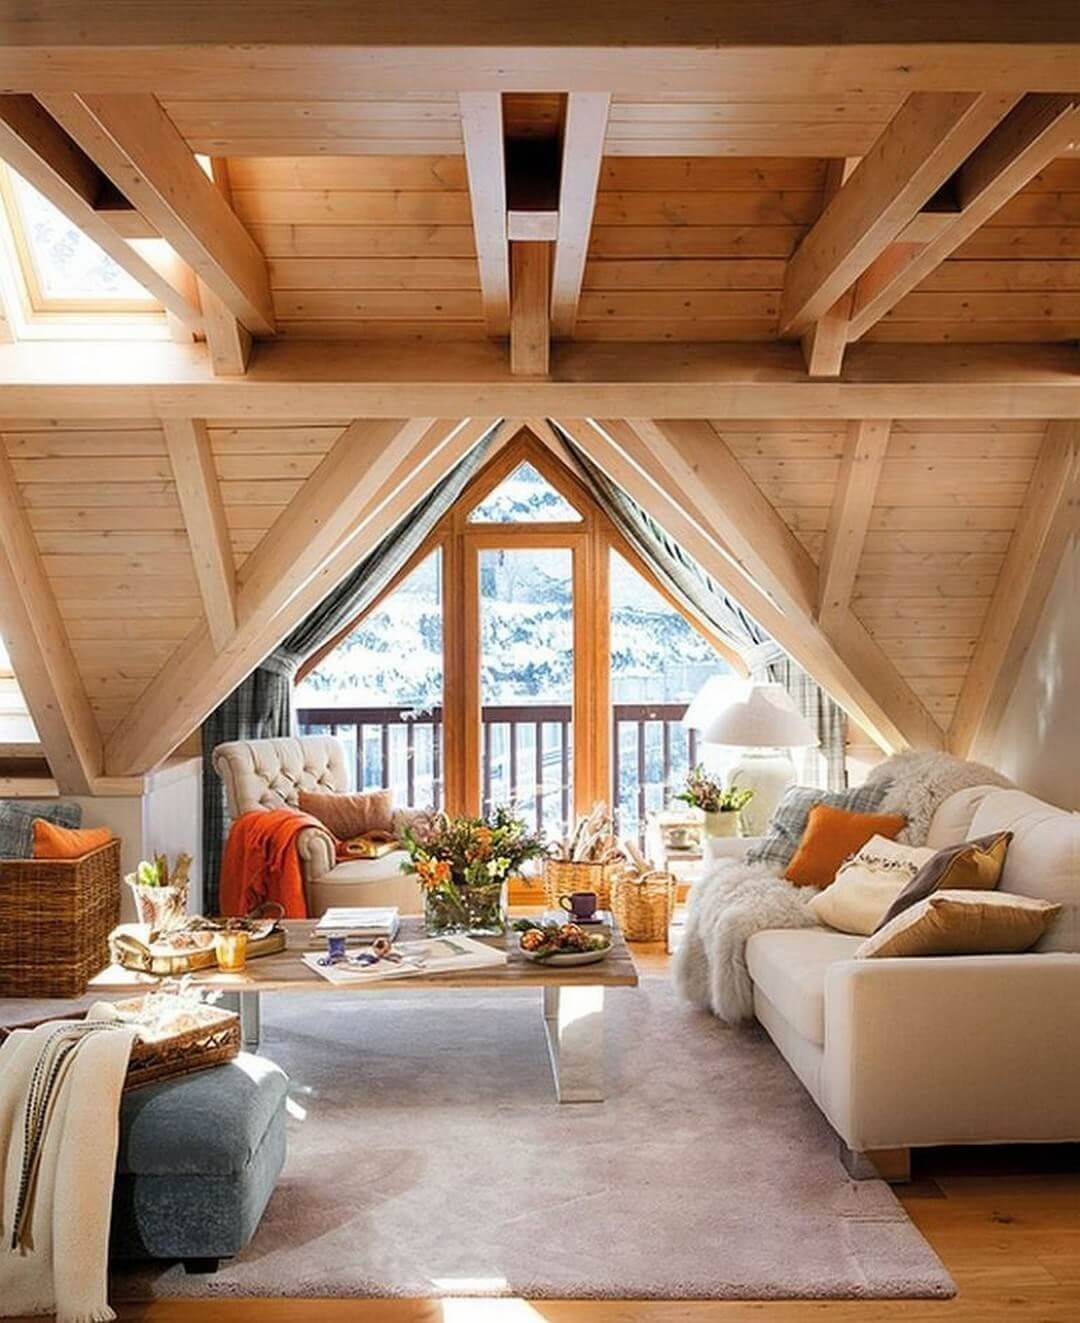 Pin By Irene Ruff On Cabin Chalet Cottage In 2020 Cottage Interiors House Design Cozy House